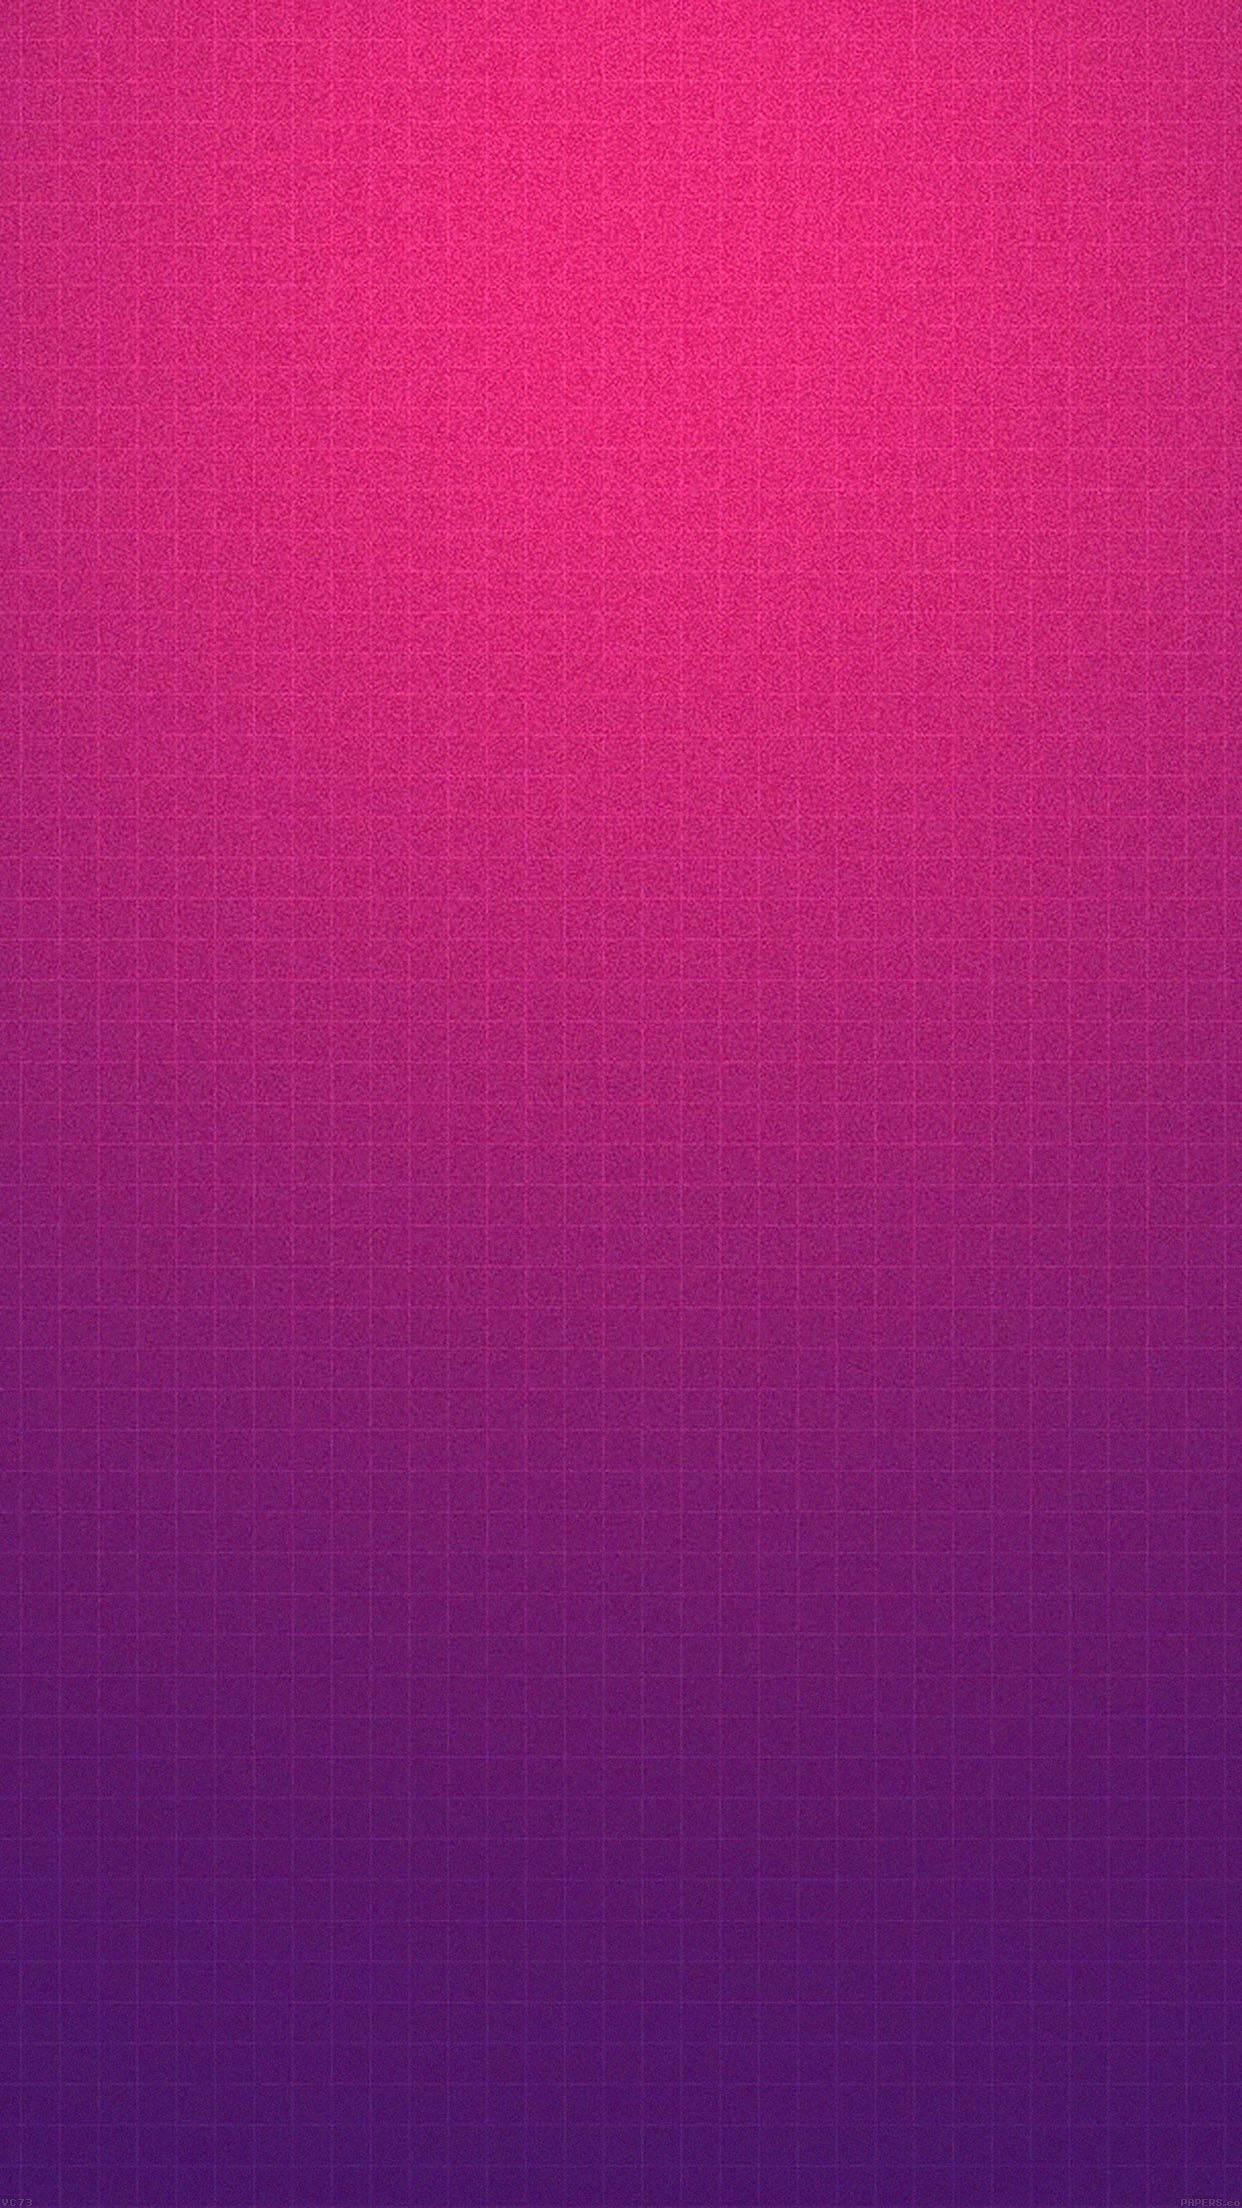 iPhone wallpaper (With images) Grid wallpaper, Colorful